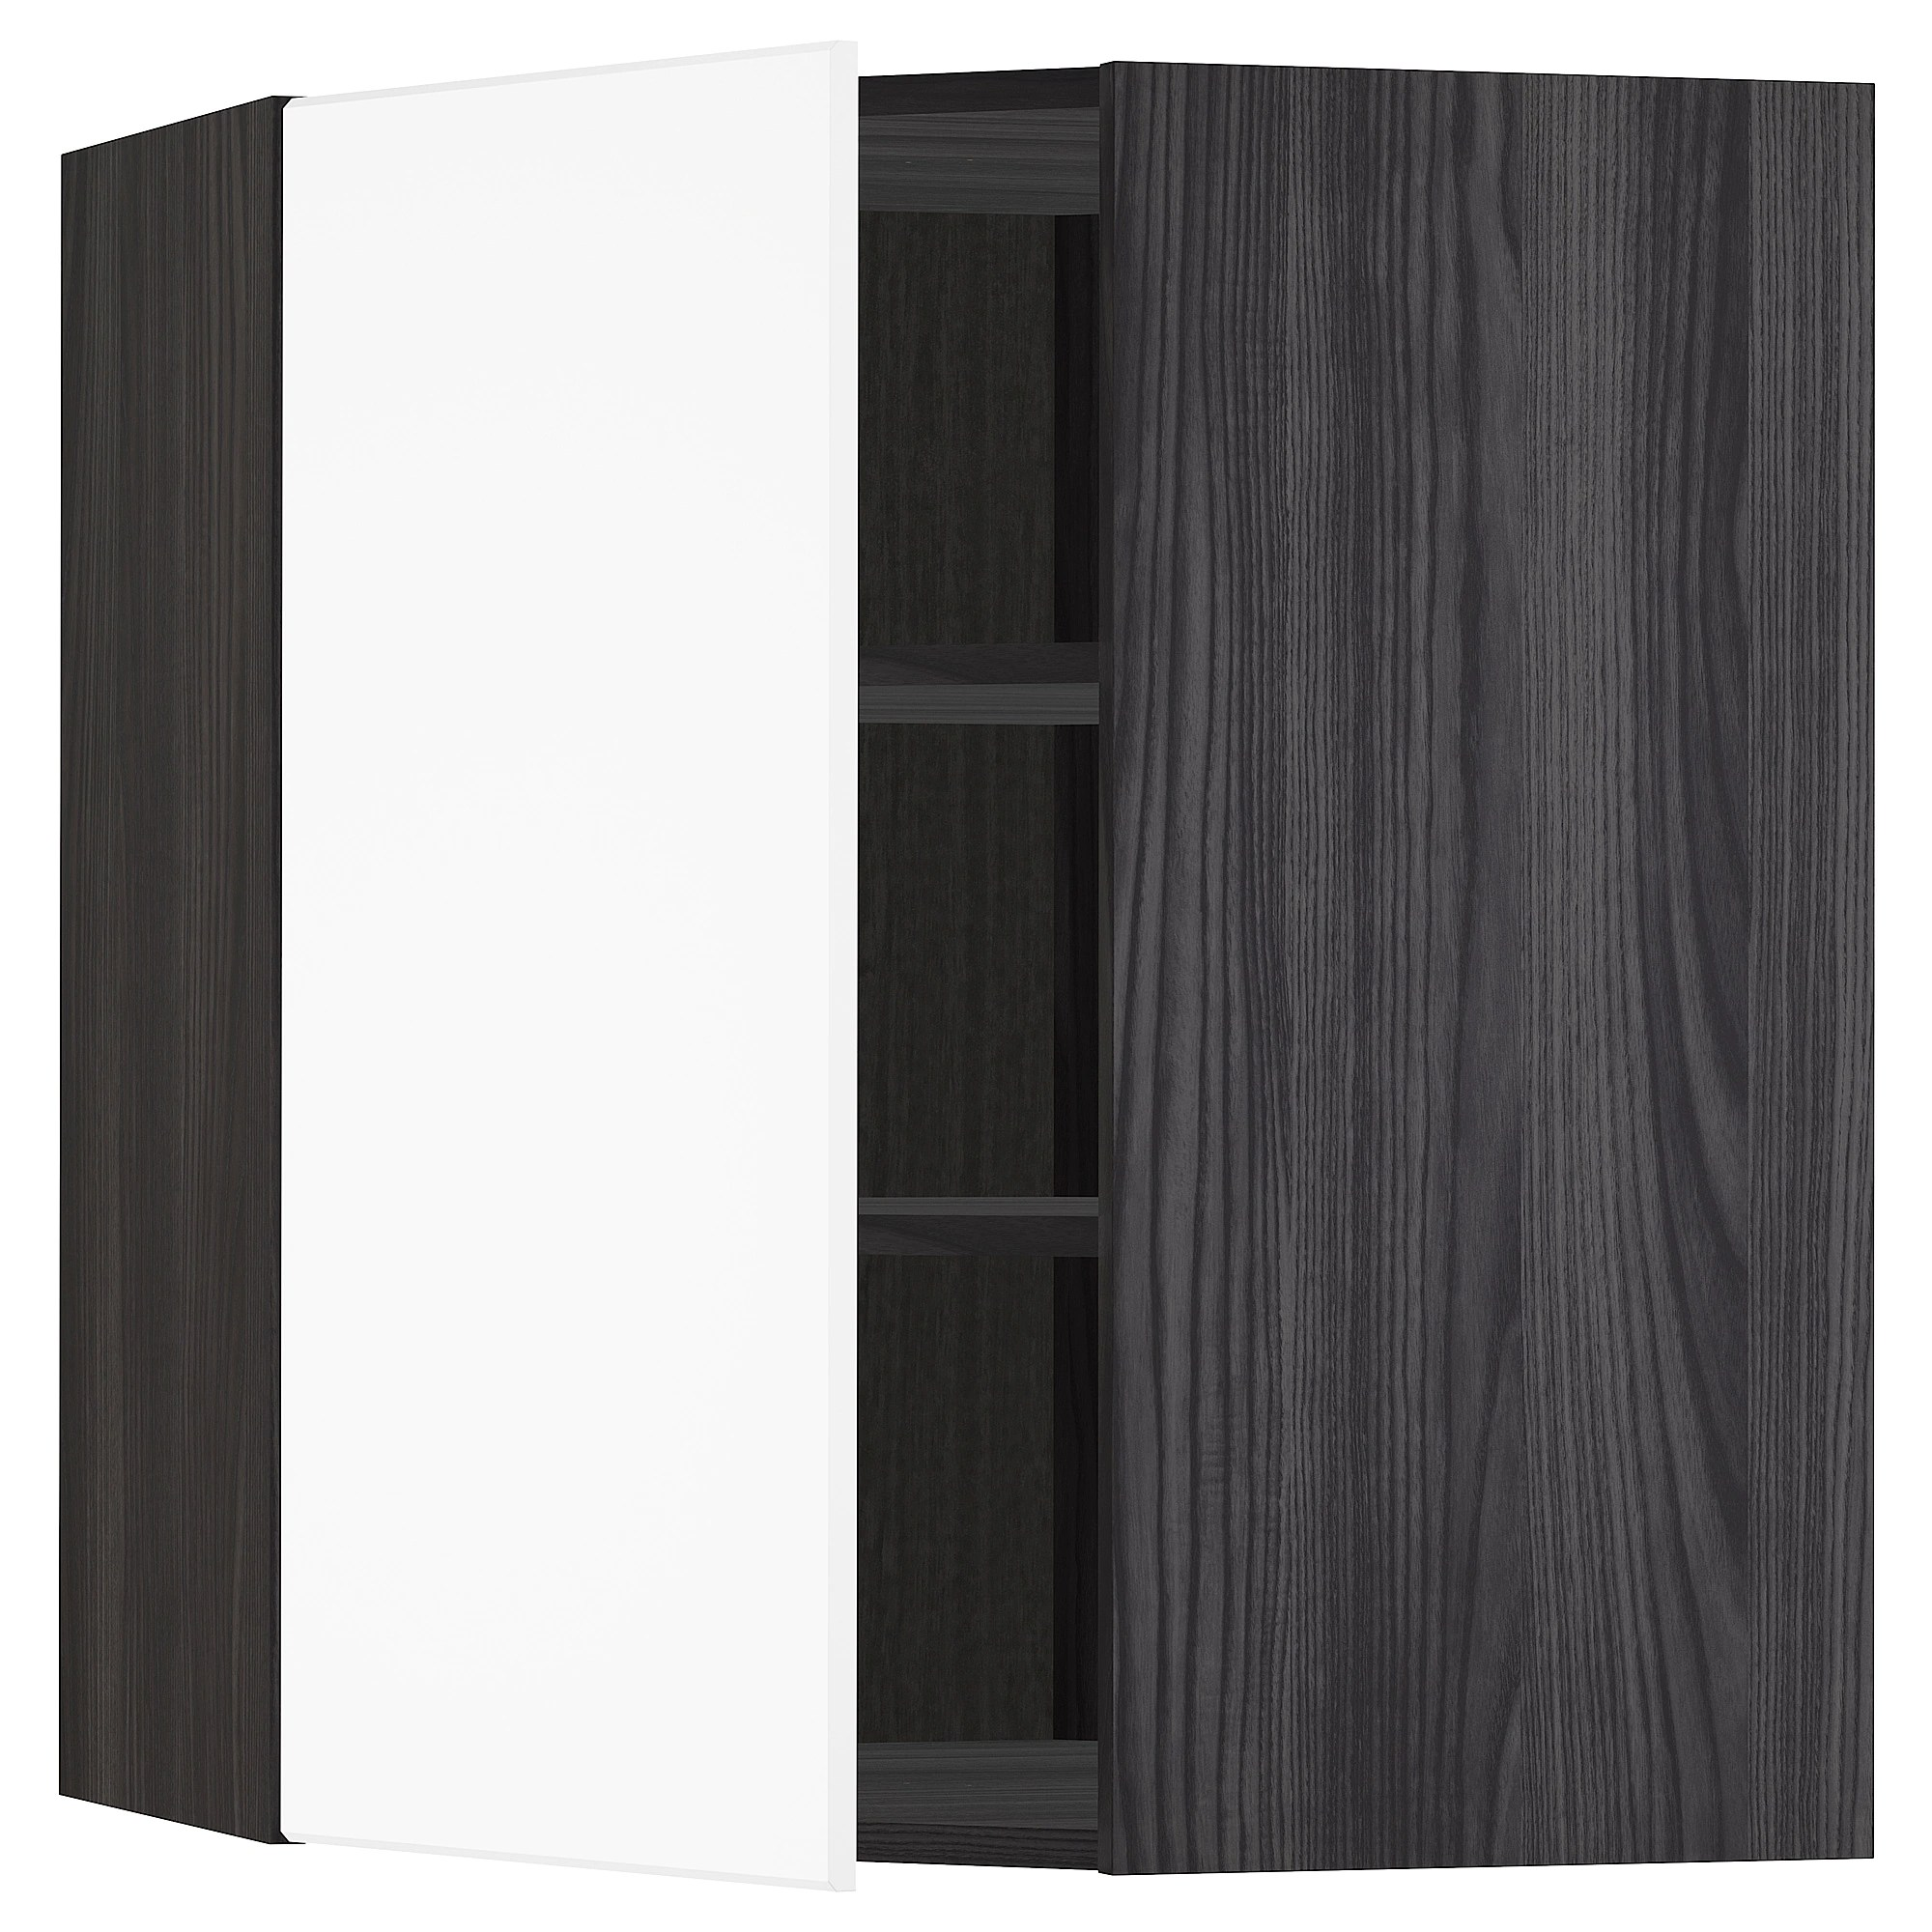 Cucina Ikea Metod Kungsbacka Metod Corner Wall Cabinet With Shelves Black Kungsbacka Matt White